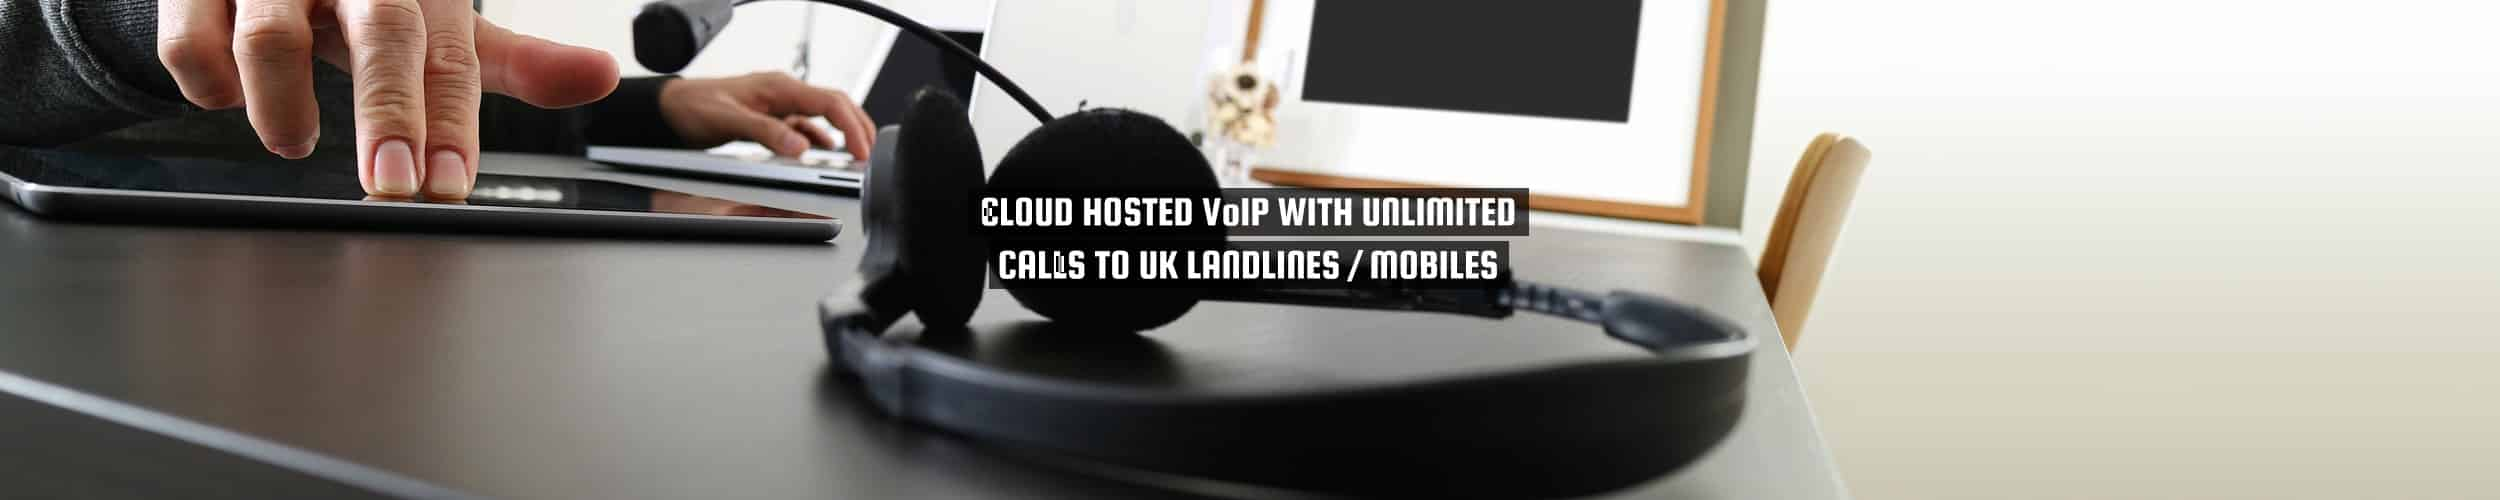 Cloud hosted VoIP with unlimited calls to UK landlines / Mobiles from 52 Degrees